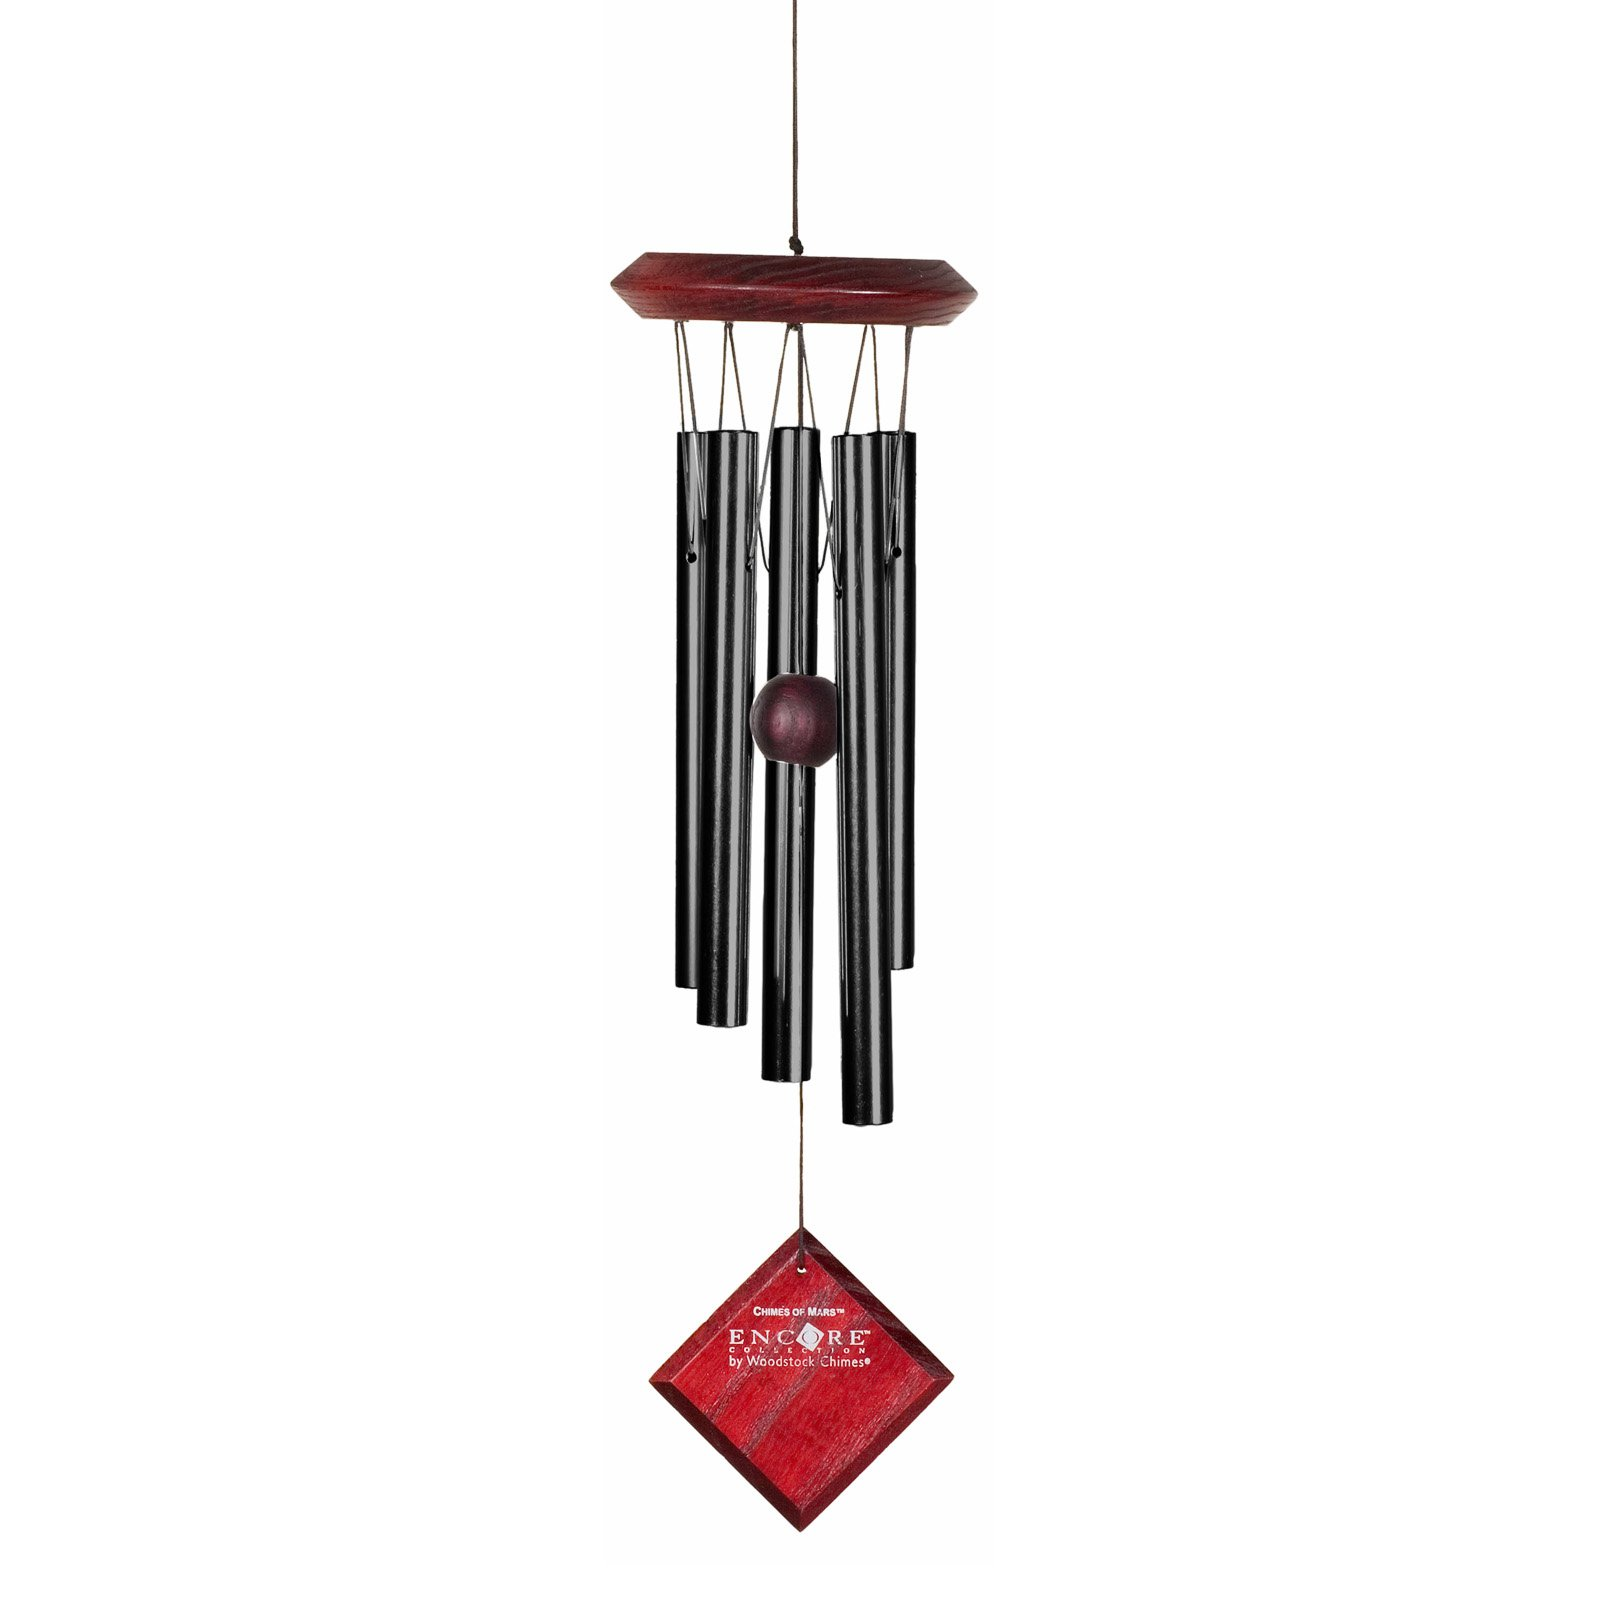 Woodstock 17 Inch Mars Wind Chime by Woodstock Chimes